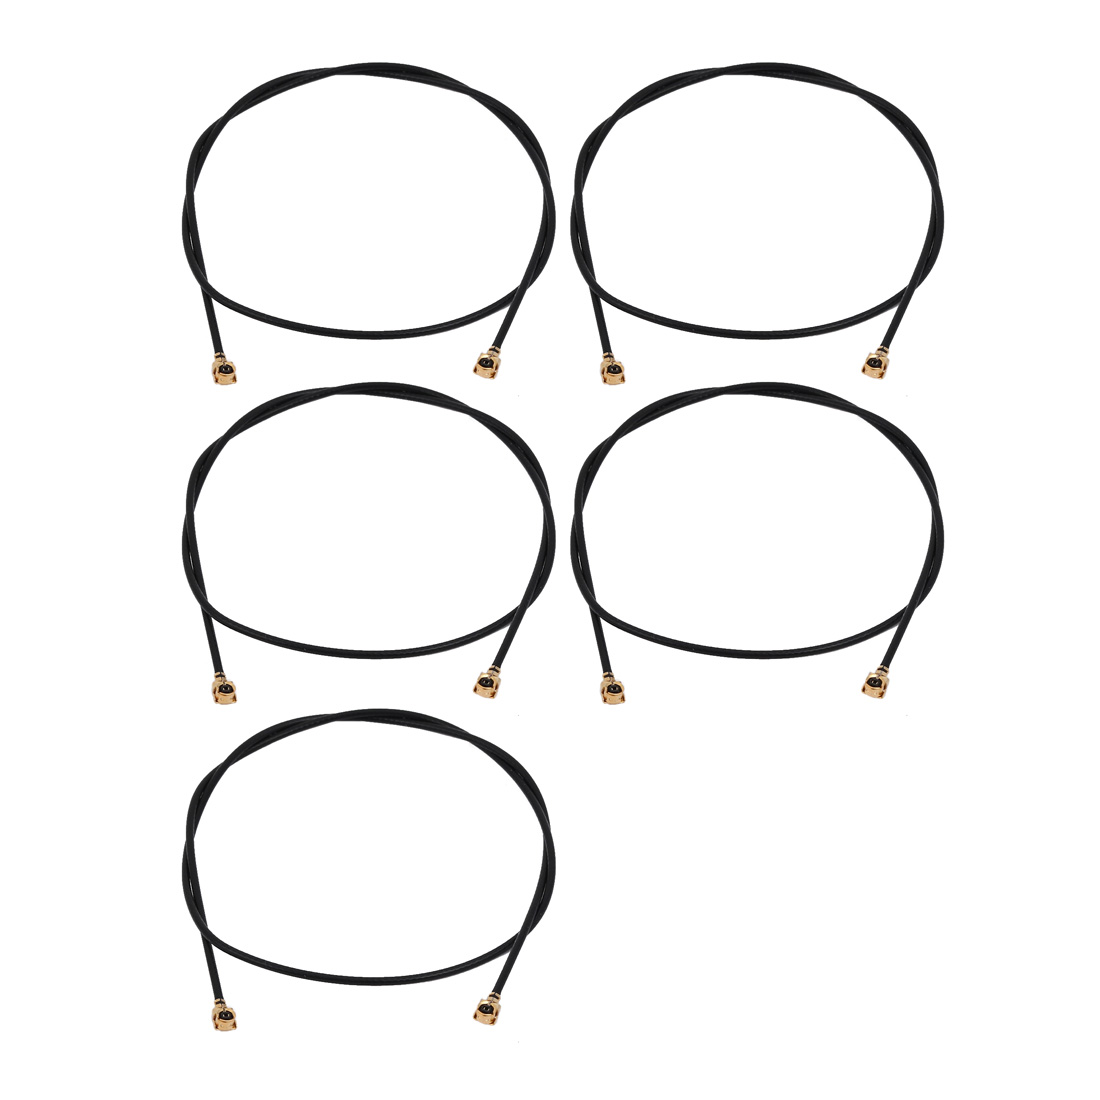 5pcs RF1.13 IPEX 1.0 to IPEX 1.0 Antenna WiFi Pigtail Cable 30cm Long for Router